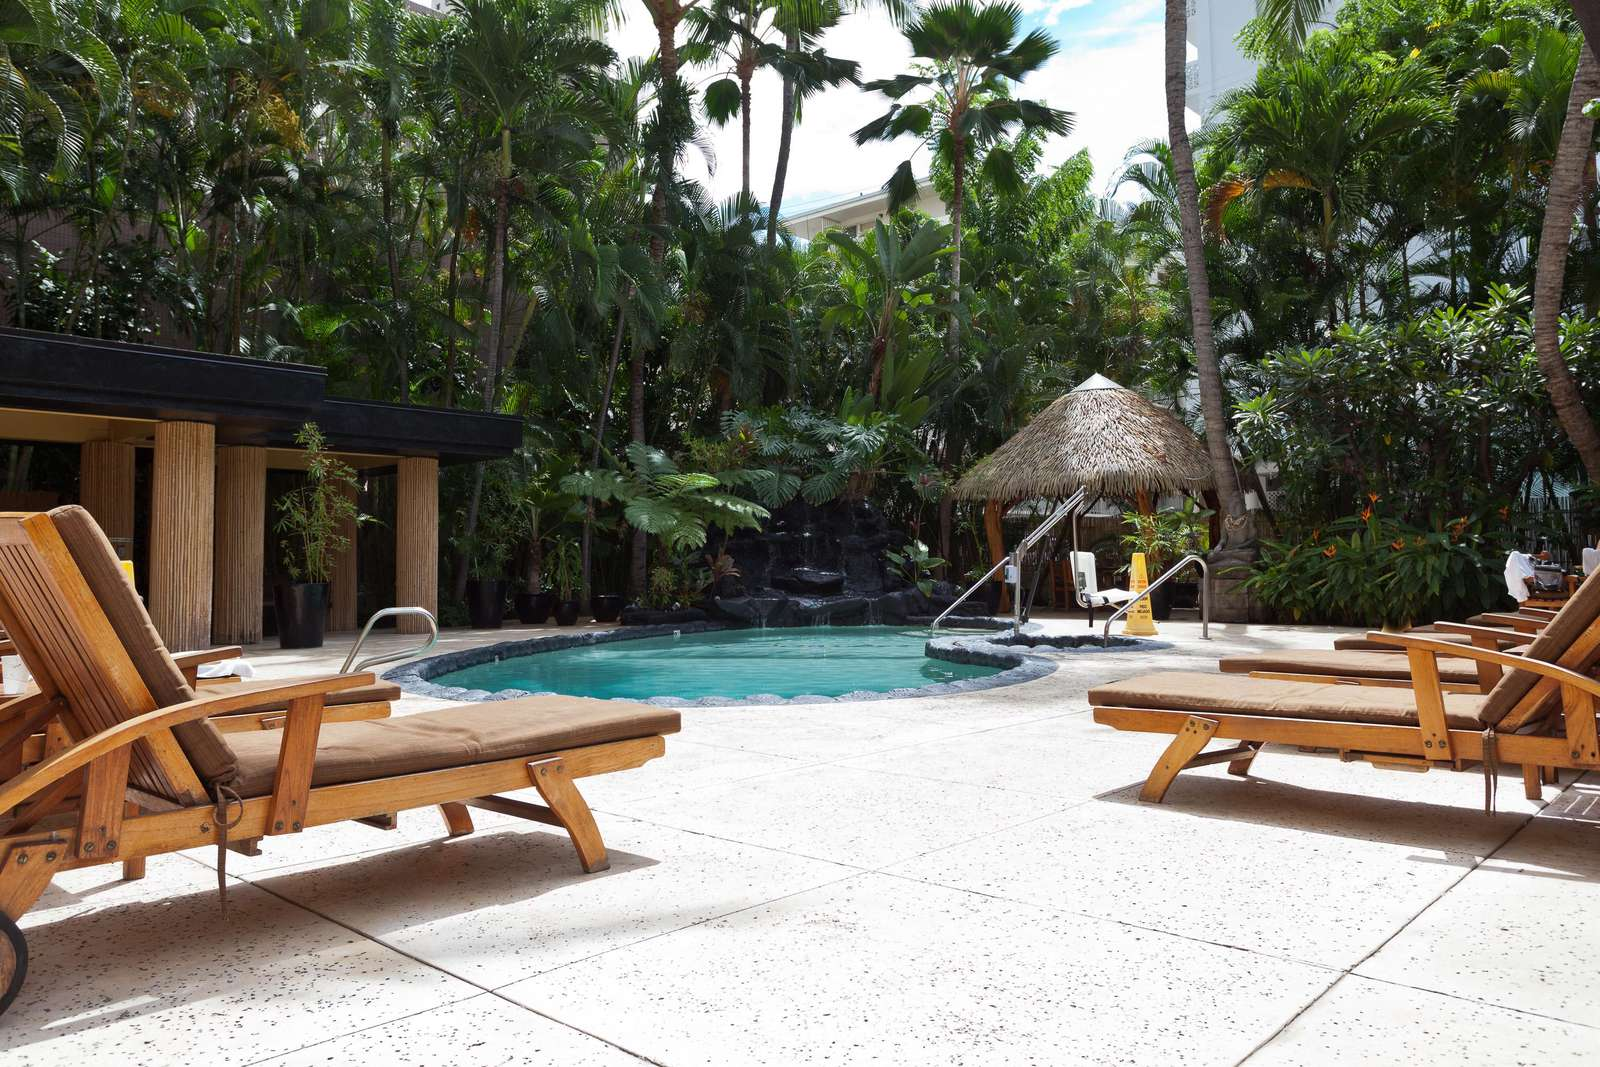 Spend your days relaxing in this tropical oasis.